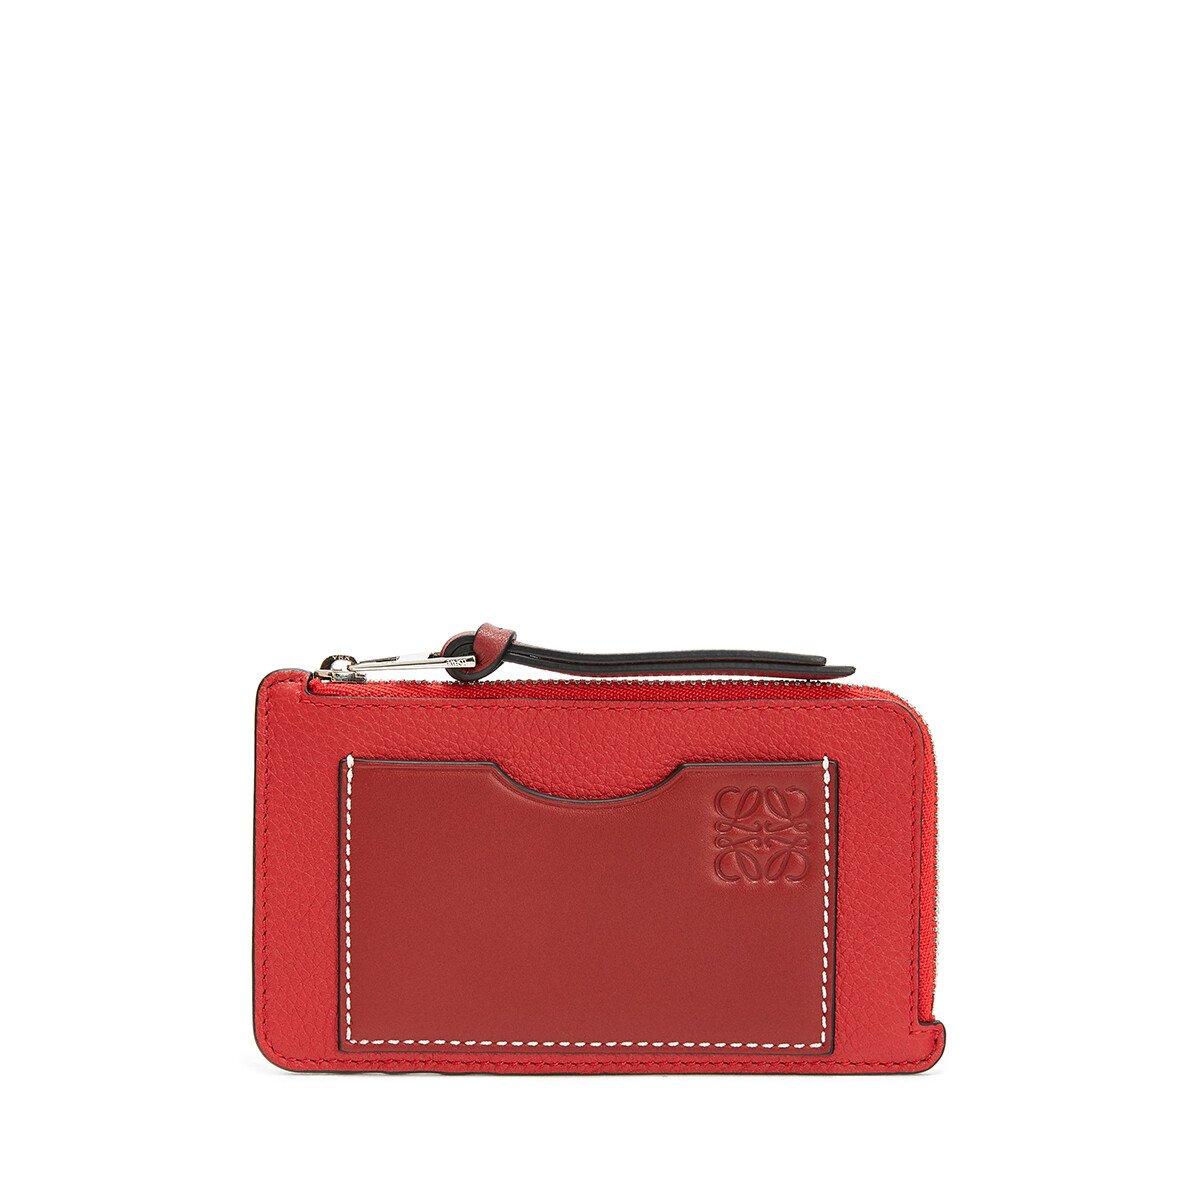 LOEWE Coin Cardholder Large Scarlet Red/Brick Red front